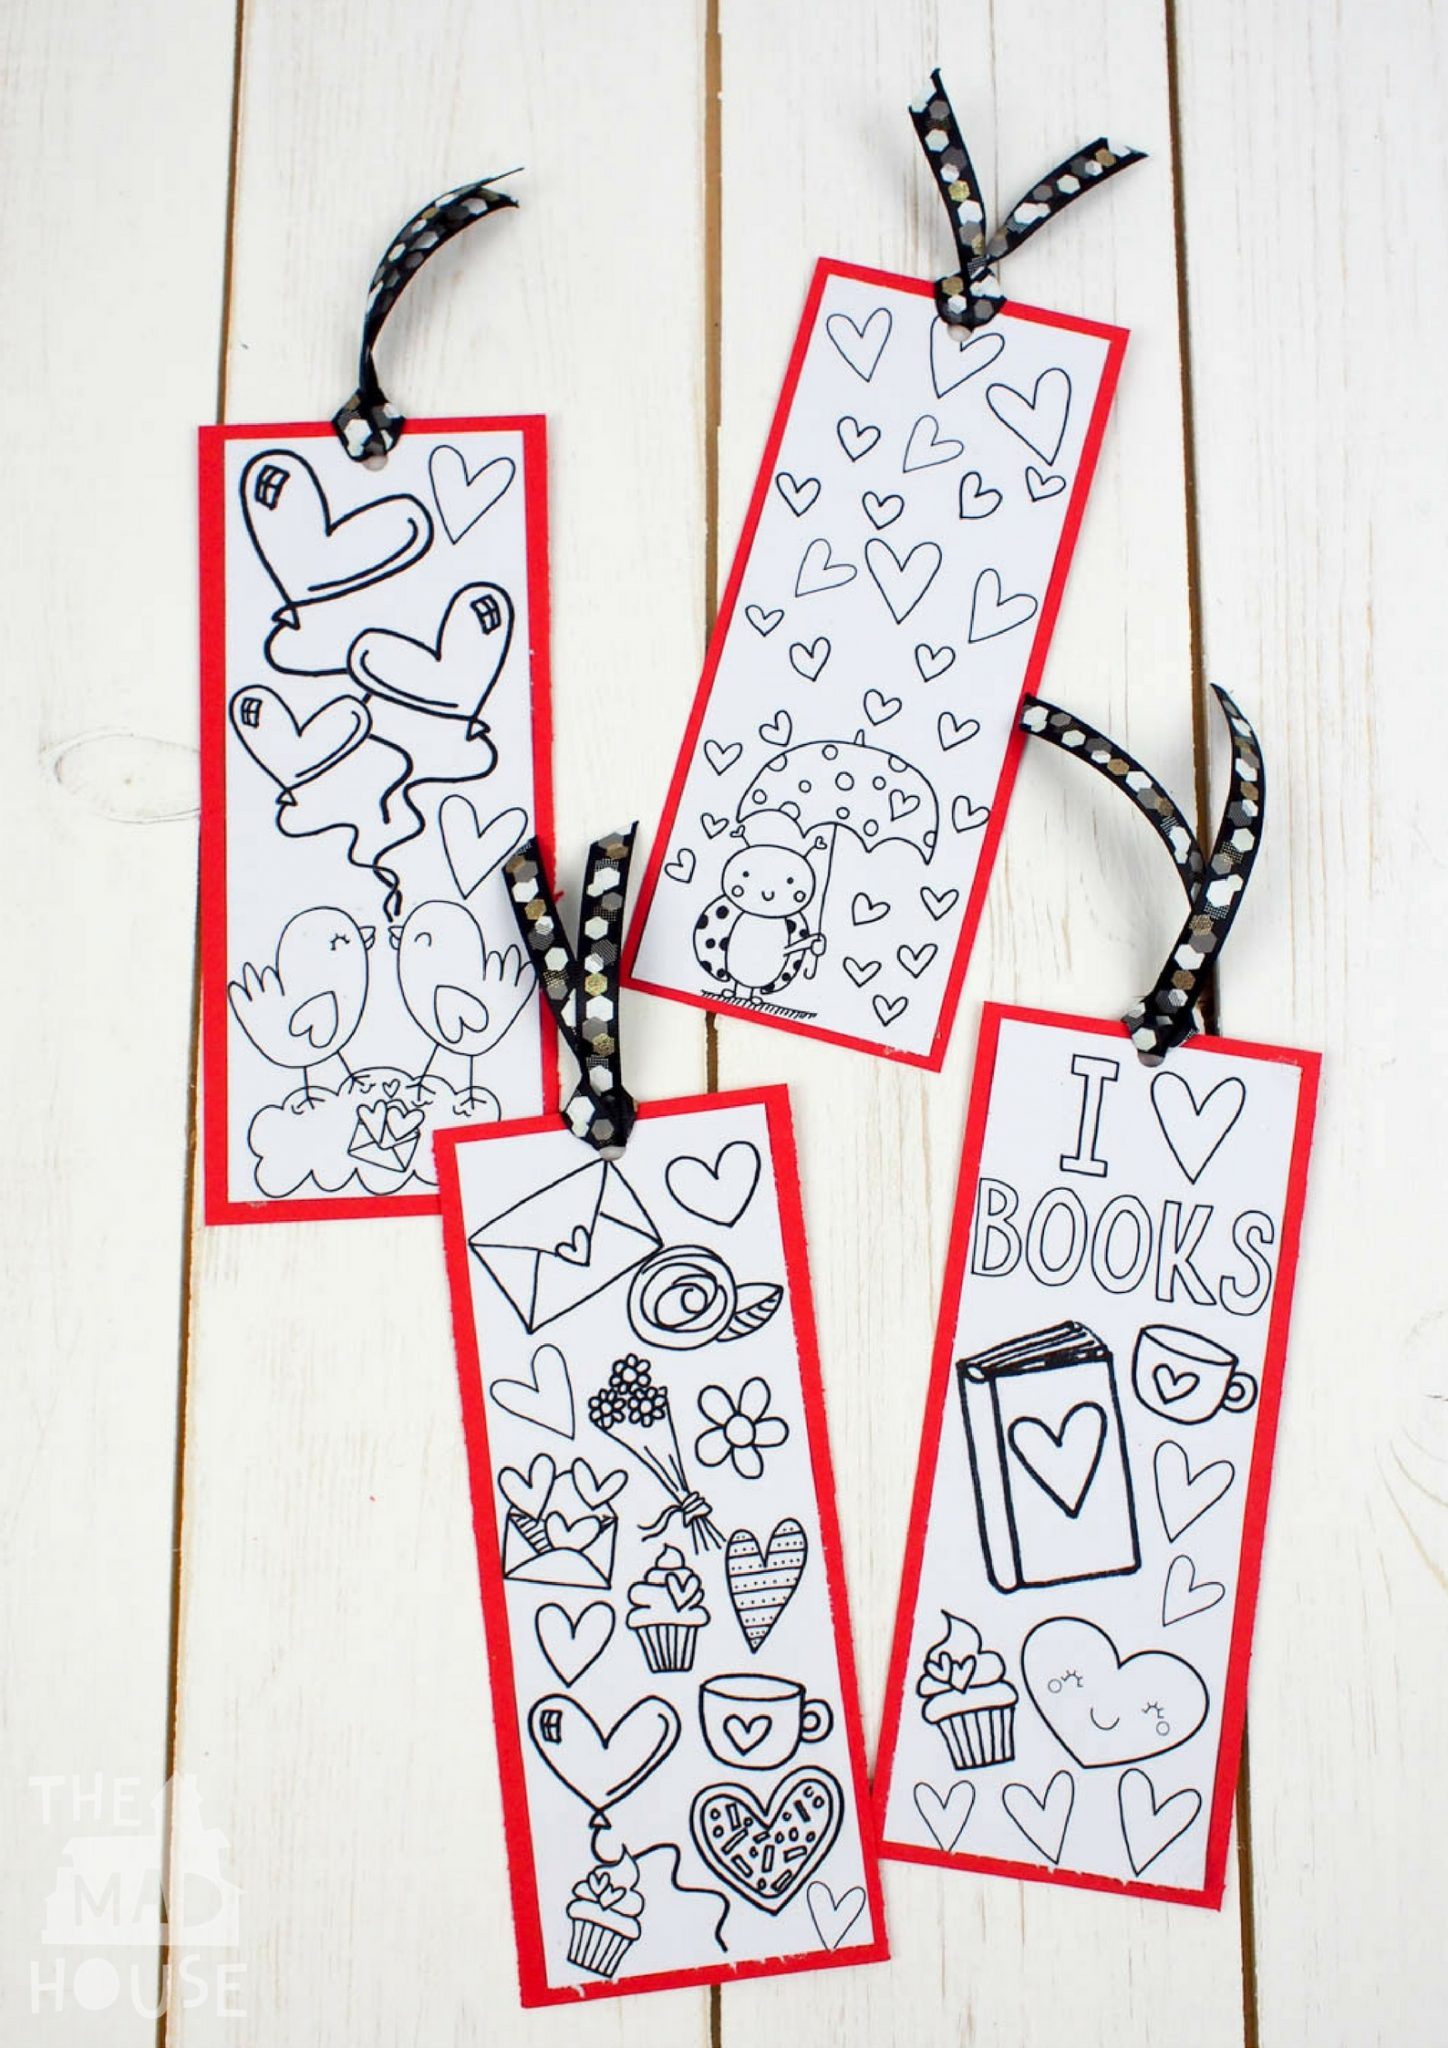 love books free colouring bookmarks - mum in the madhouse